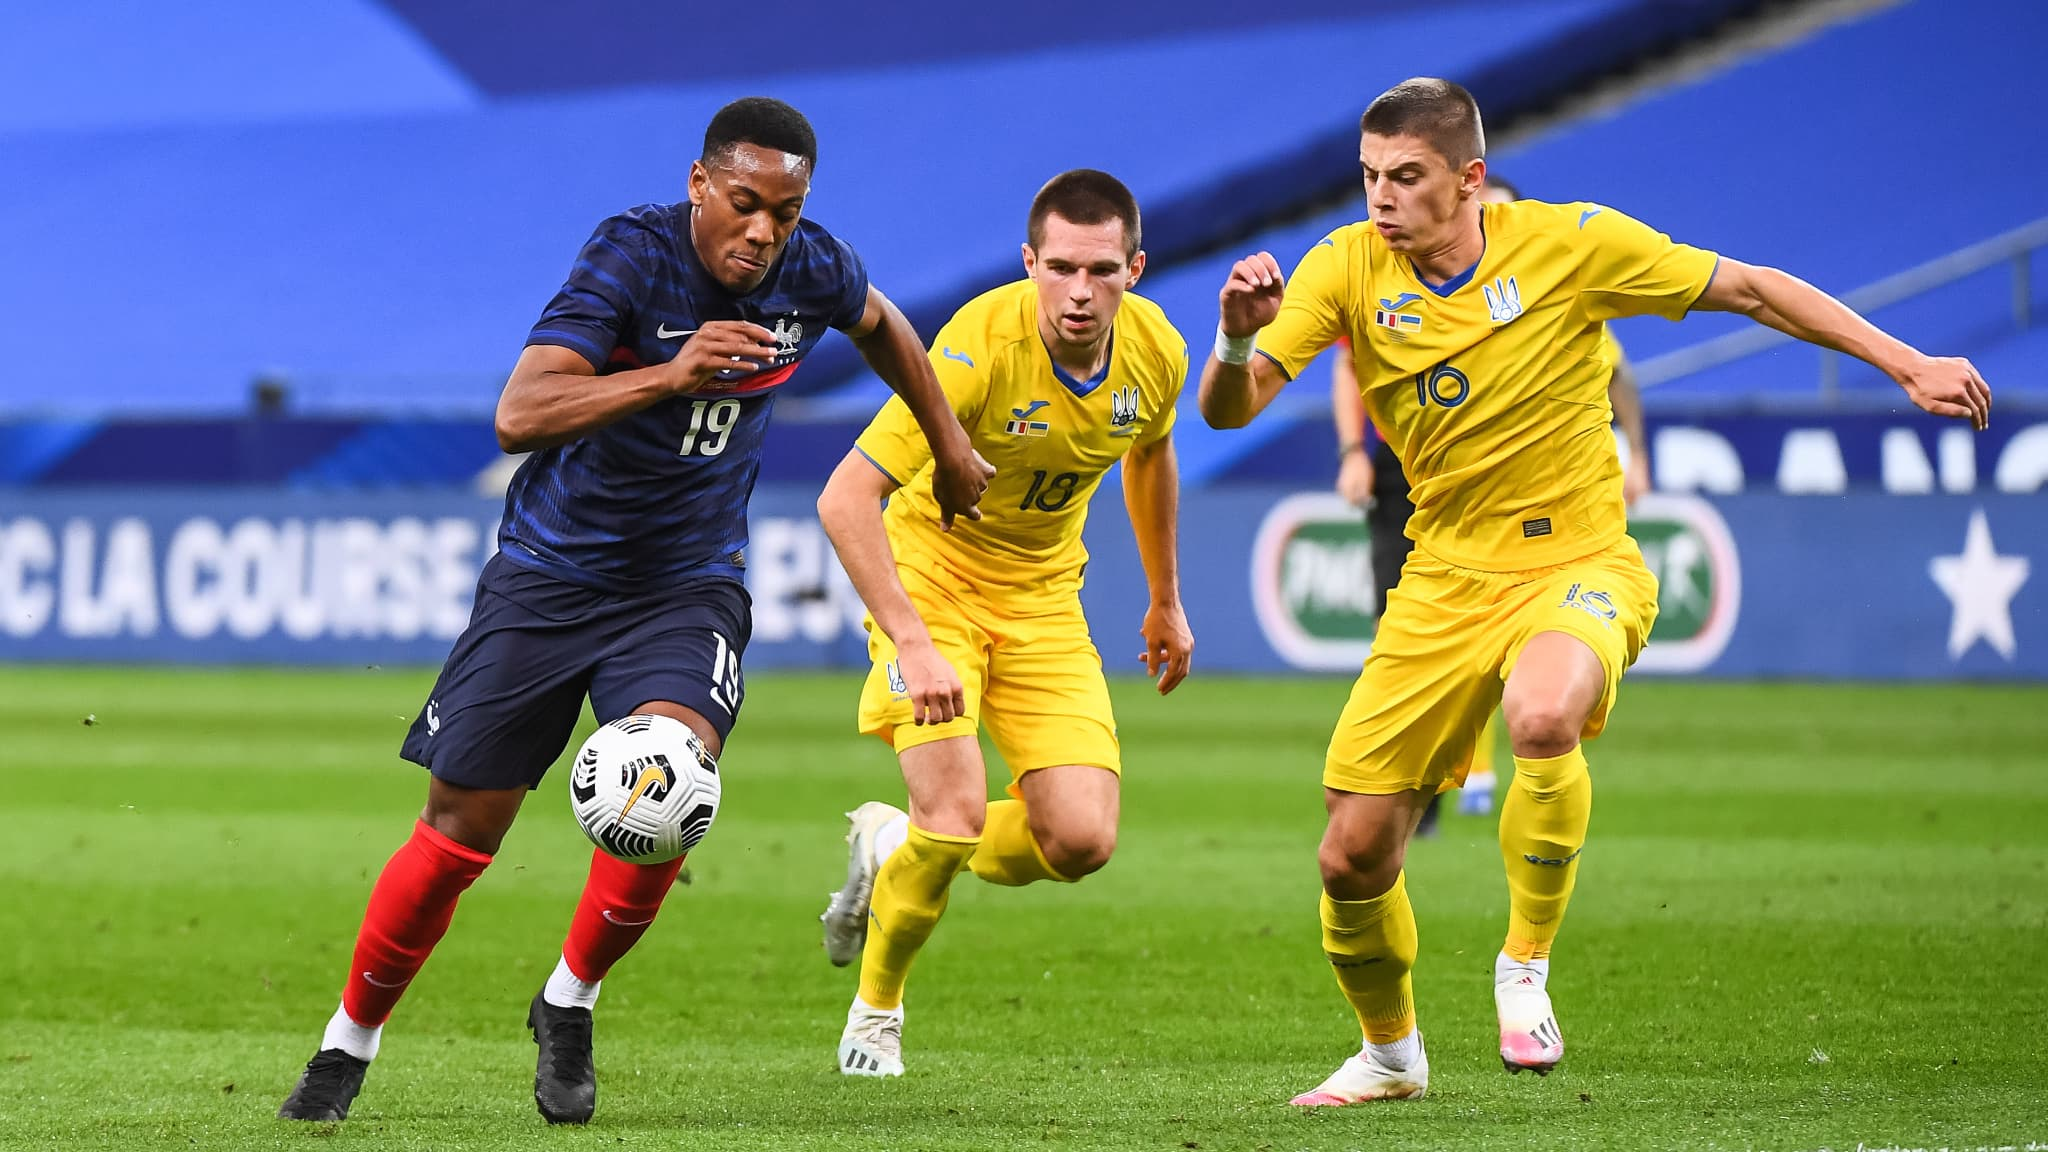 France vs Ukraine: Prediction, Lineups, Team News, Betting Tips & Match Previews